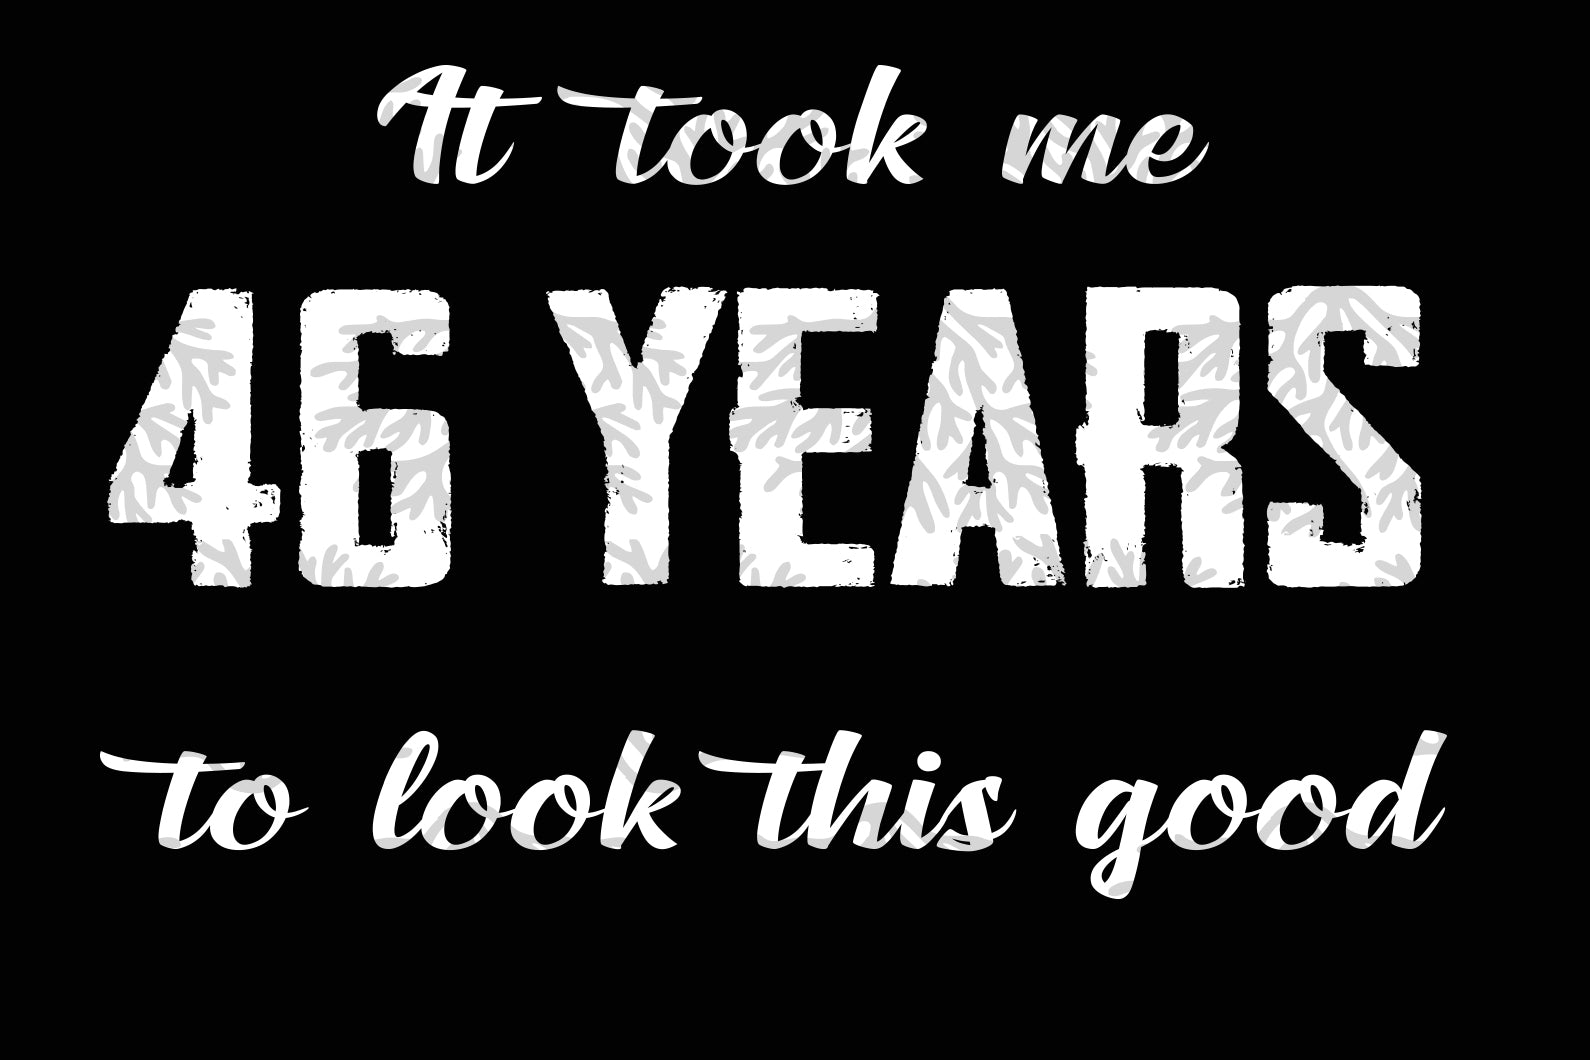 It took me 46 years to look this good, born in 1973, 1973 svg, 46th birthday gift, 46th birthday party, birthday anniversary, birthday gift, digital file,